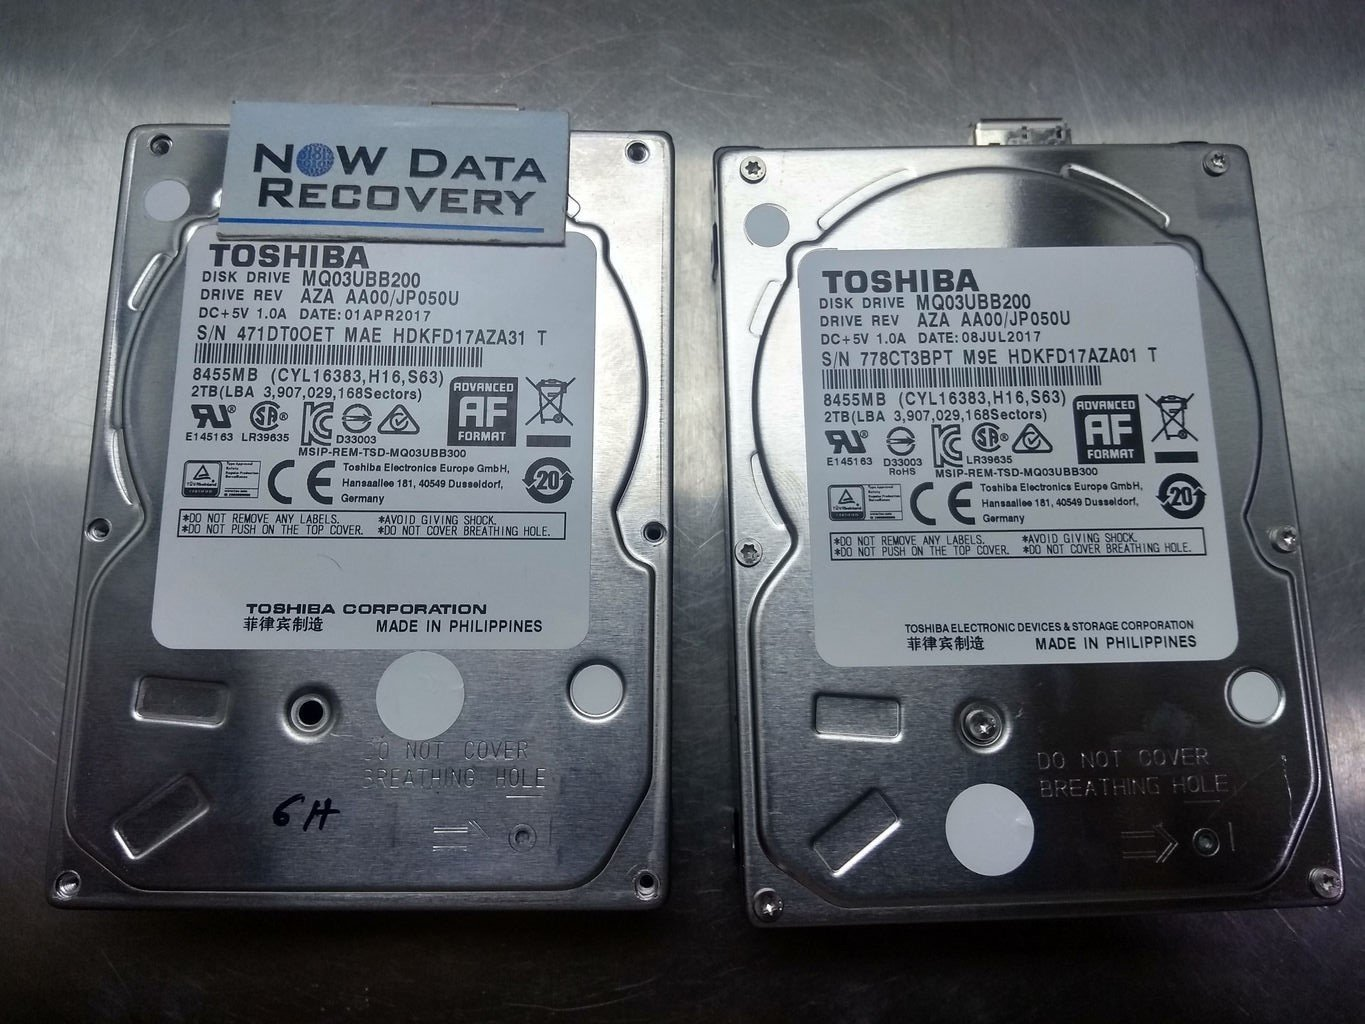 Toshiba Data Recovery from 2 TB USB Hard Drive